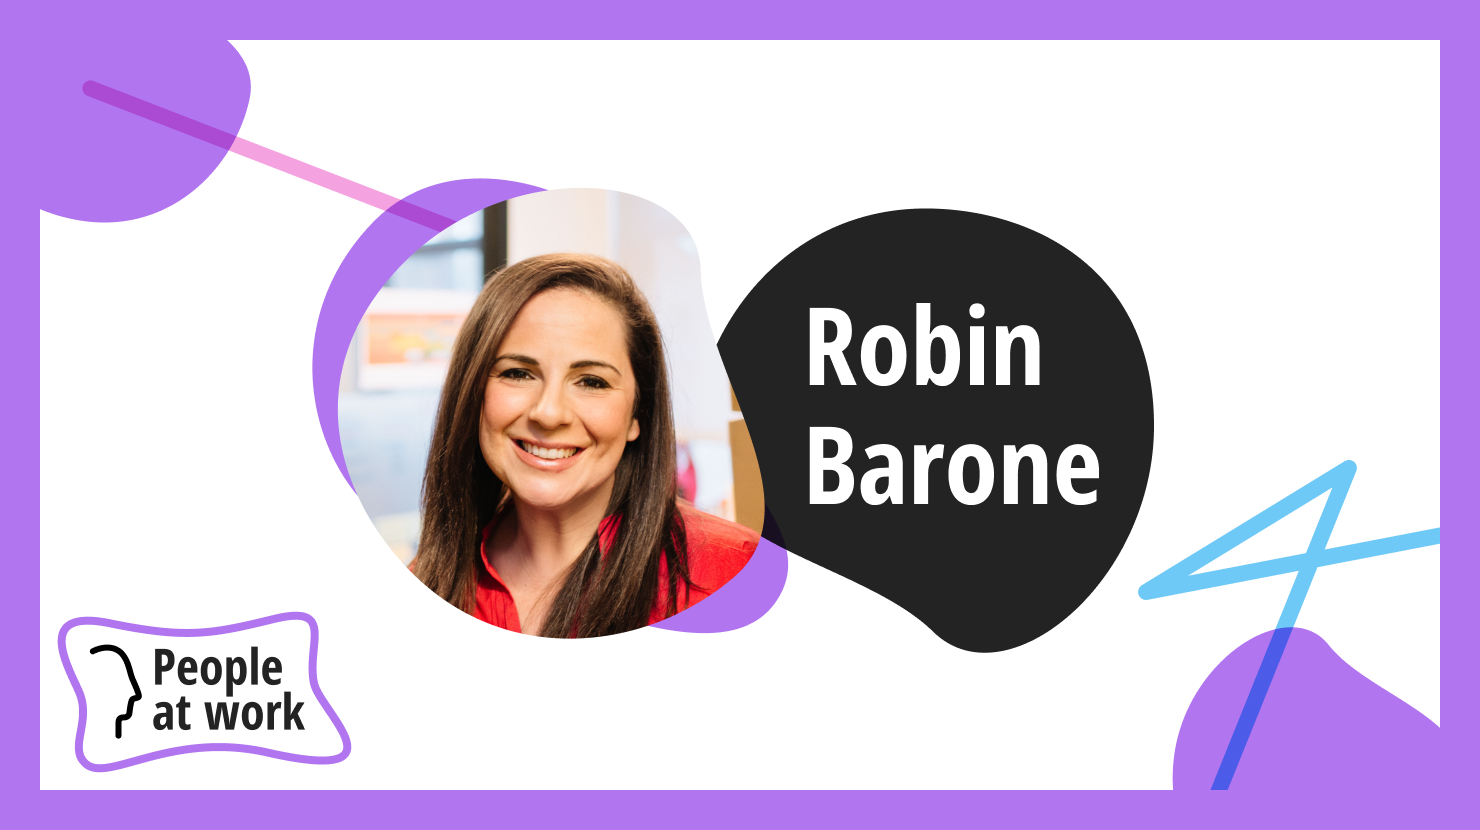 Curiosity is the foundation for workplace culture with Robin Barone